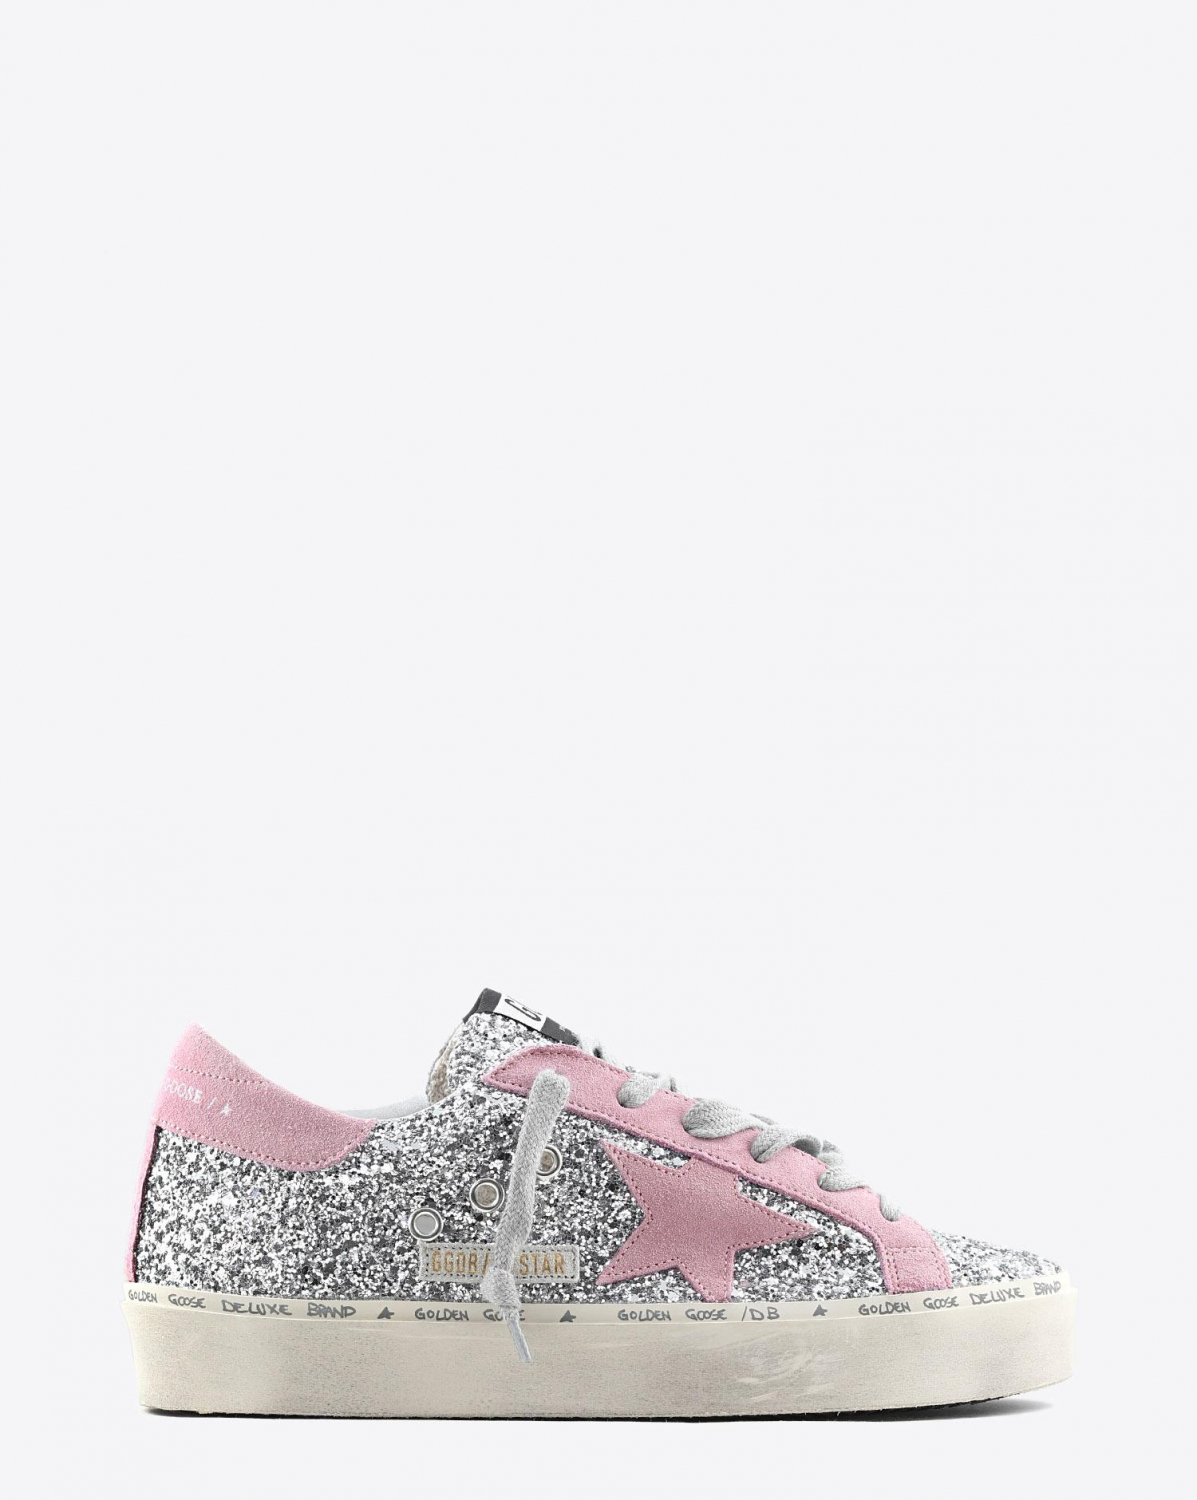 Golden Goose Woman Pré-Collection Sneakers Hi Star - Silver Glitter - Pink Suede Star